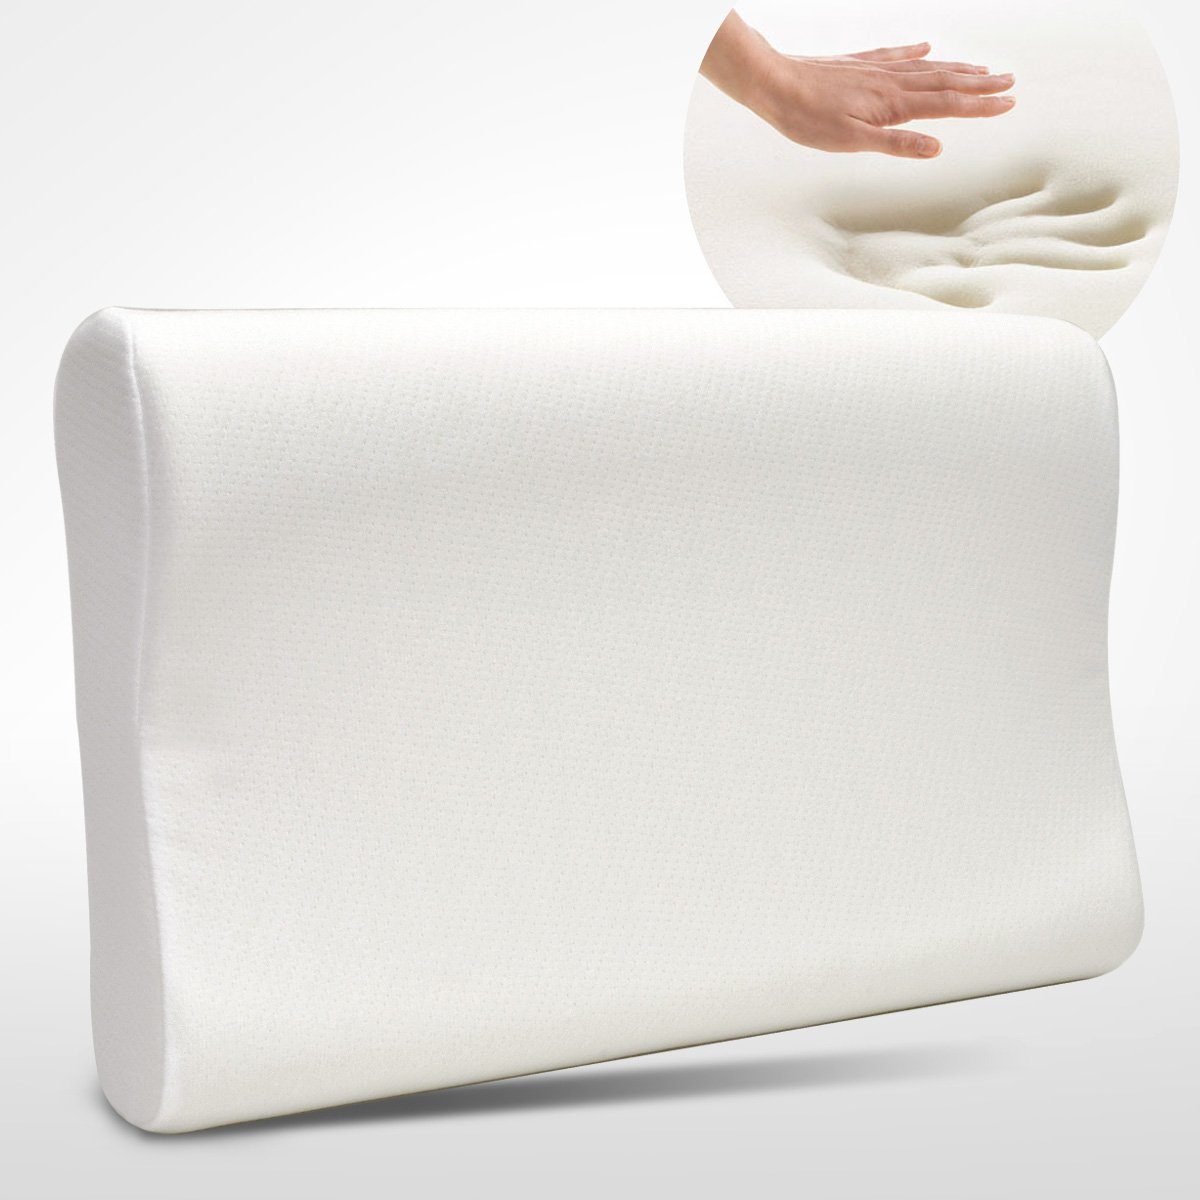 Dasein Premium Contour Memory Foam Pillow with Washable Fabric Cover - Standard Size